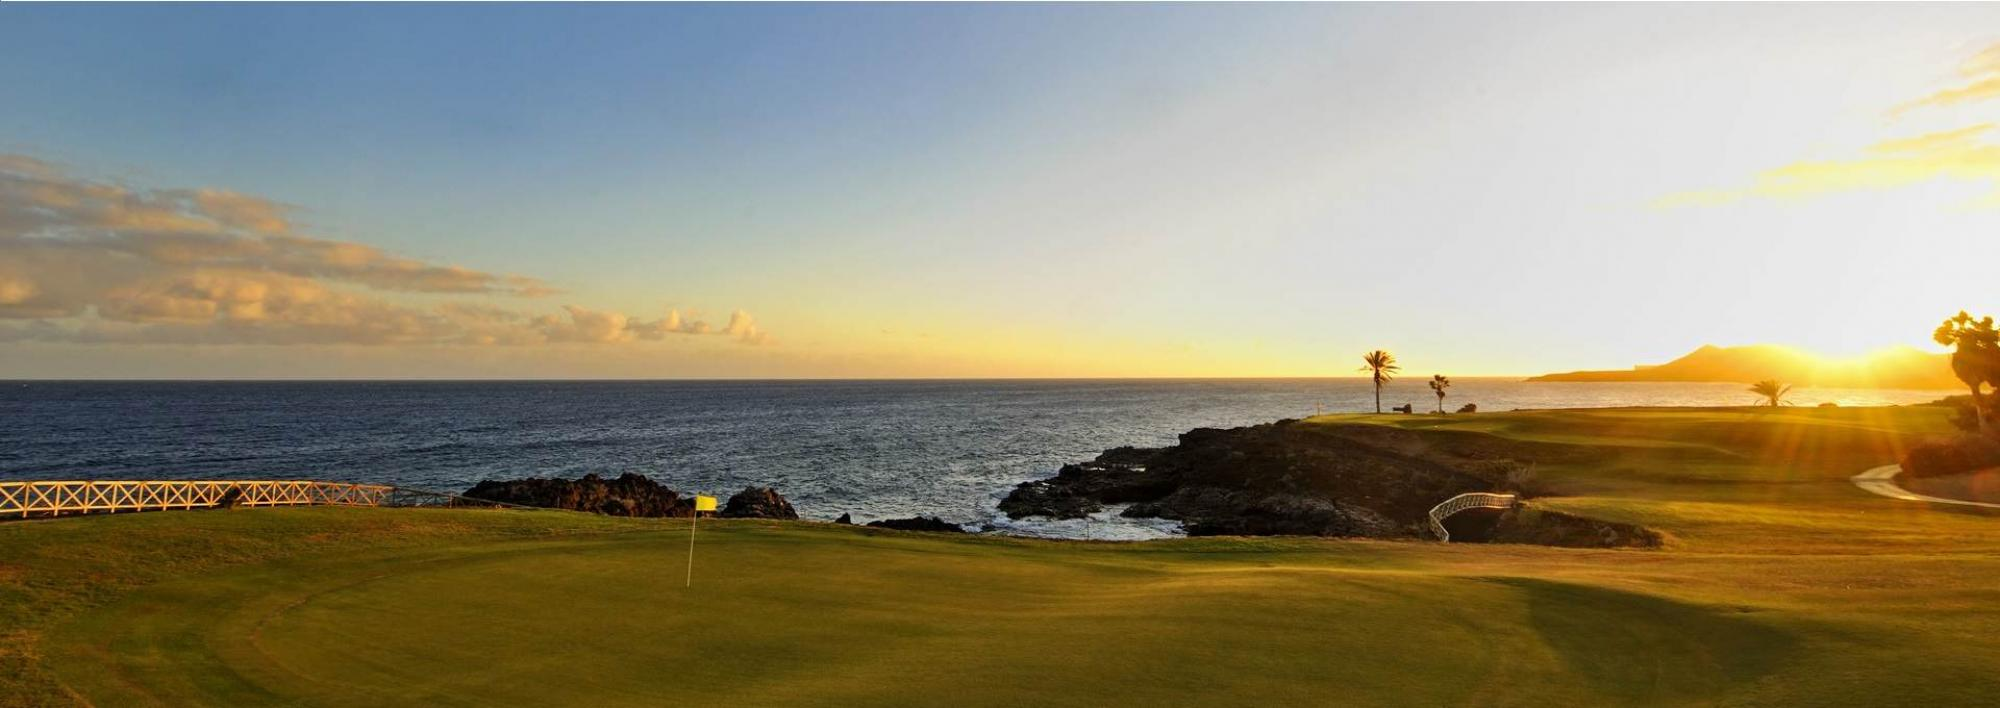 The Amarilla Golf and Country Club's lovely golf course within magnificent Tenerife.